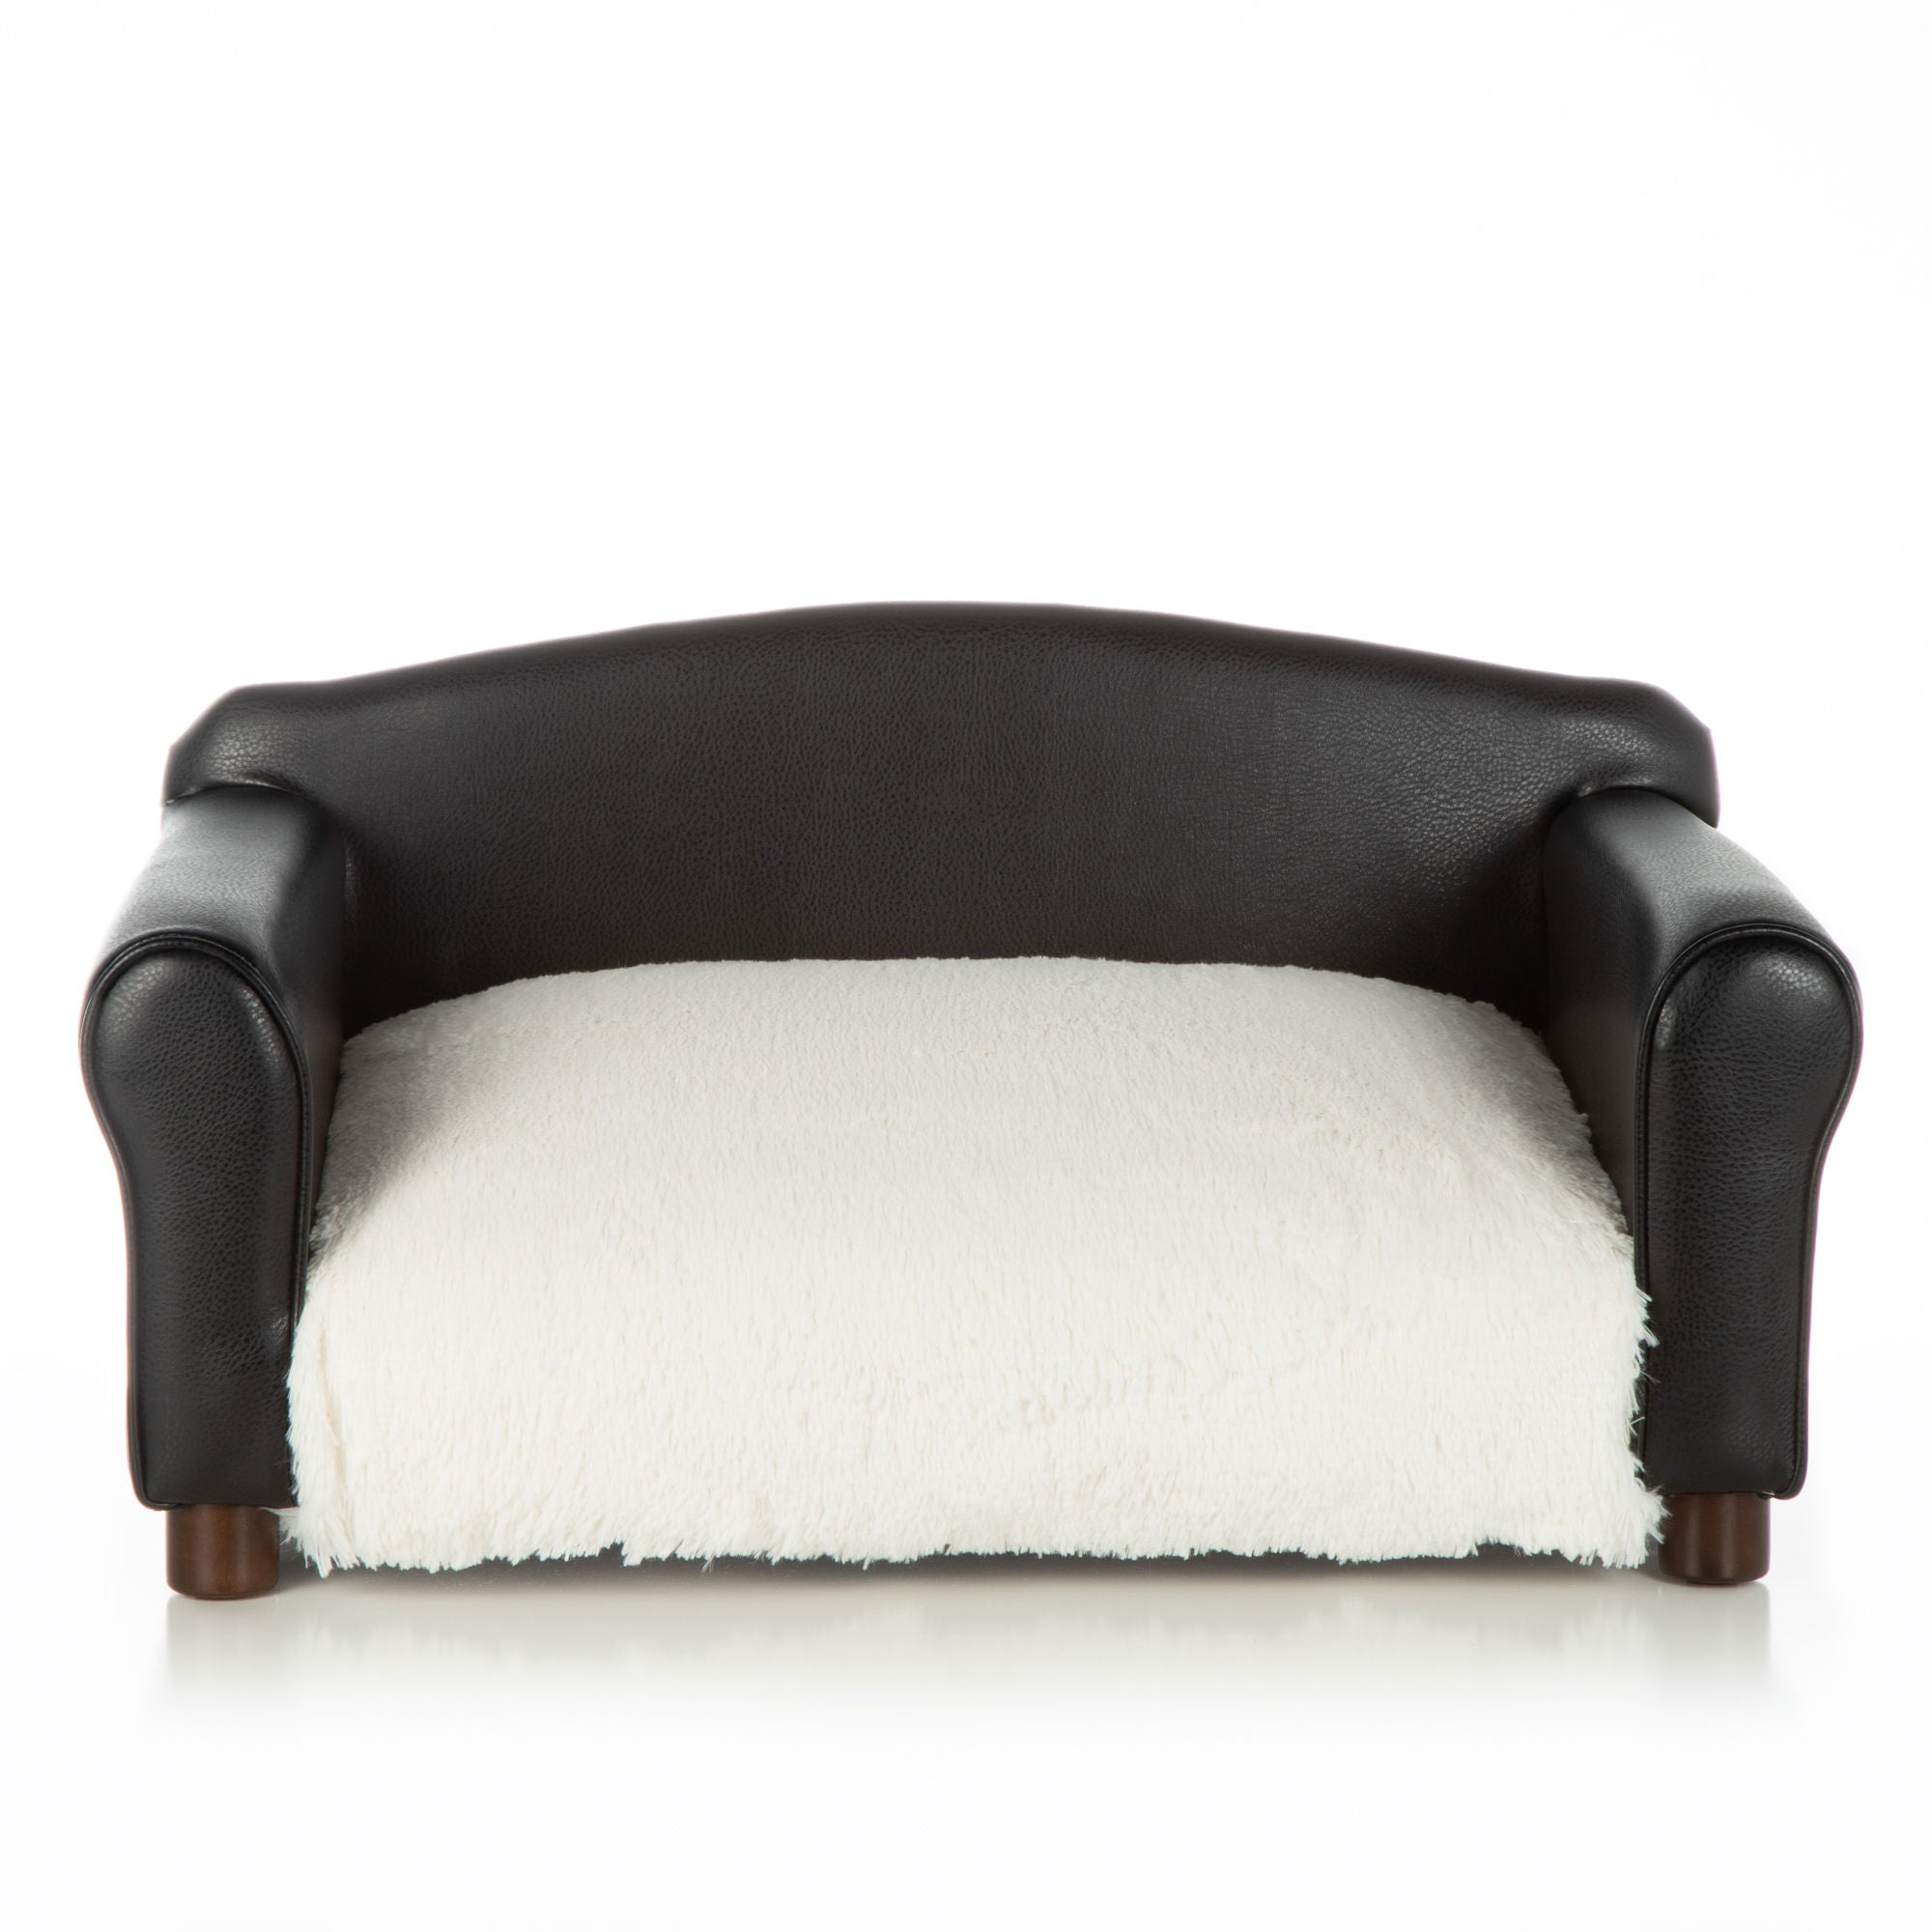 Dog Bed Black Couch Orthopedic White Shaggy Cushion by Club Nine Pets